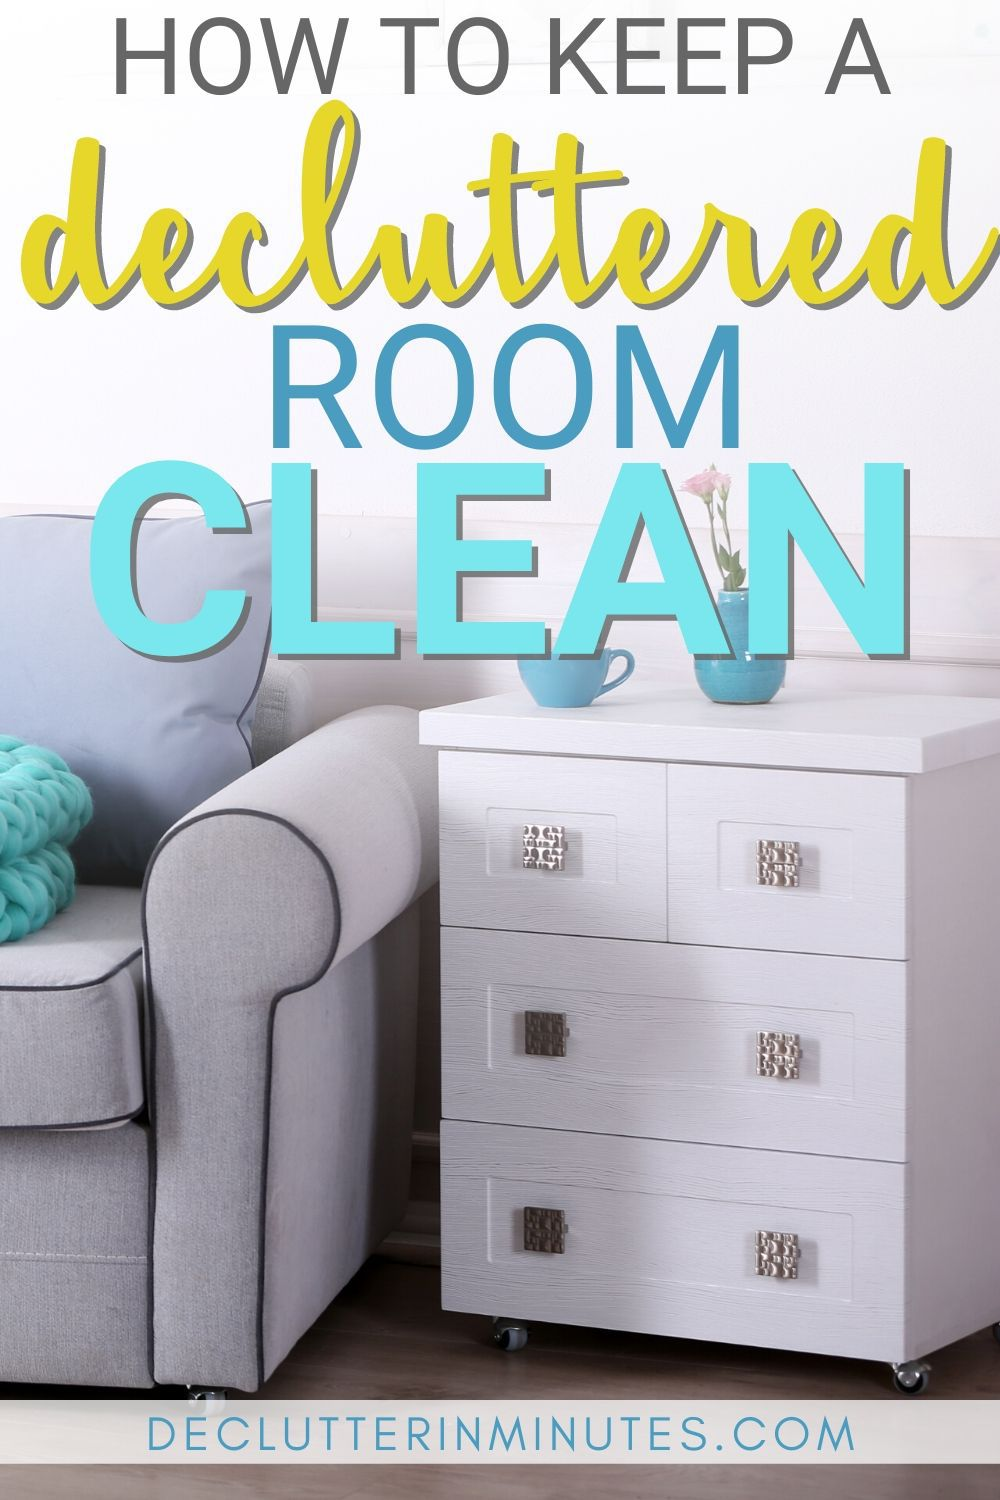 Want to know the best kept secret to a clutter-free and organized home? Try my room reset and finally learn a super simple way to keep your home free of clutter. #clutter #declutter #cleaningtips #organize #declutterinminutes